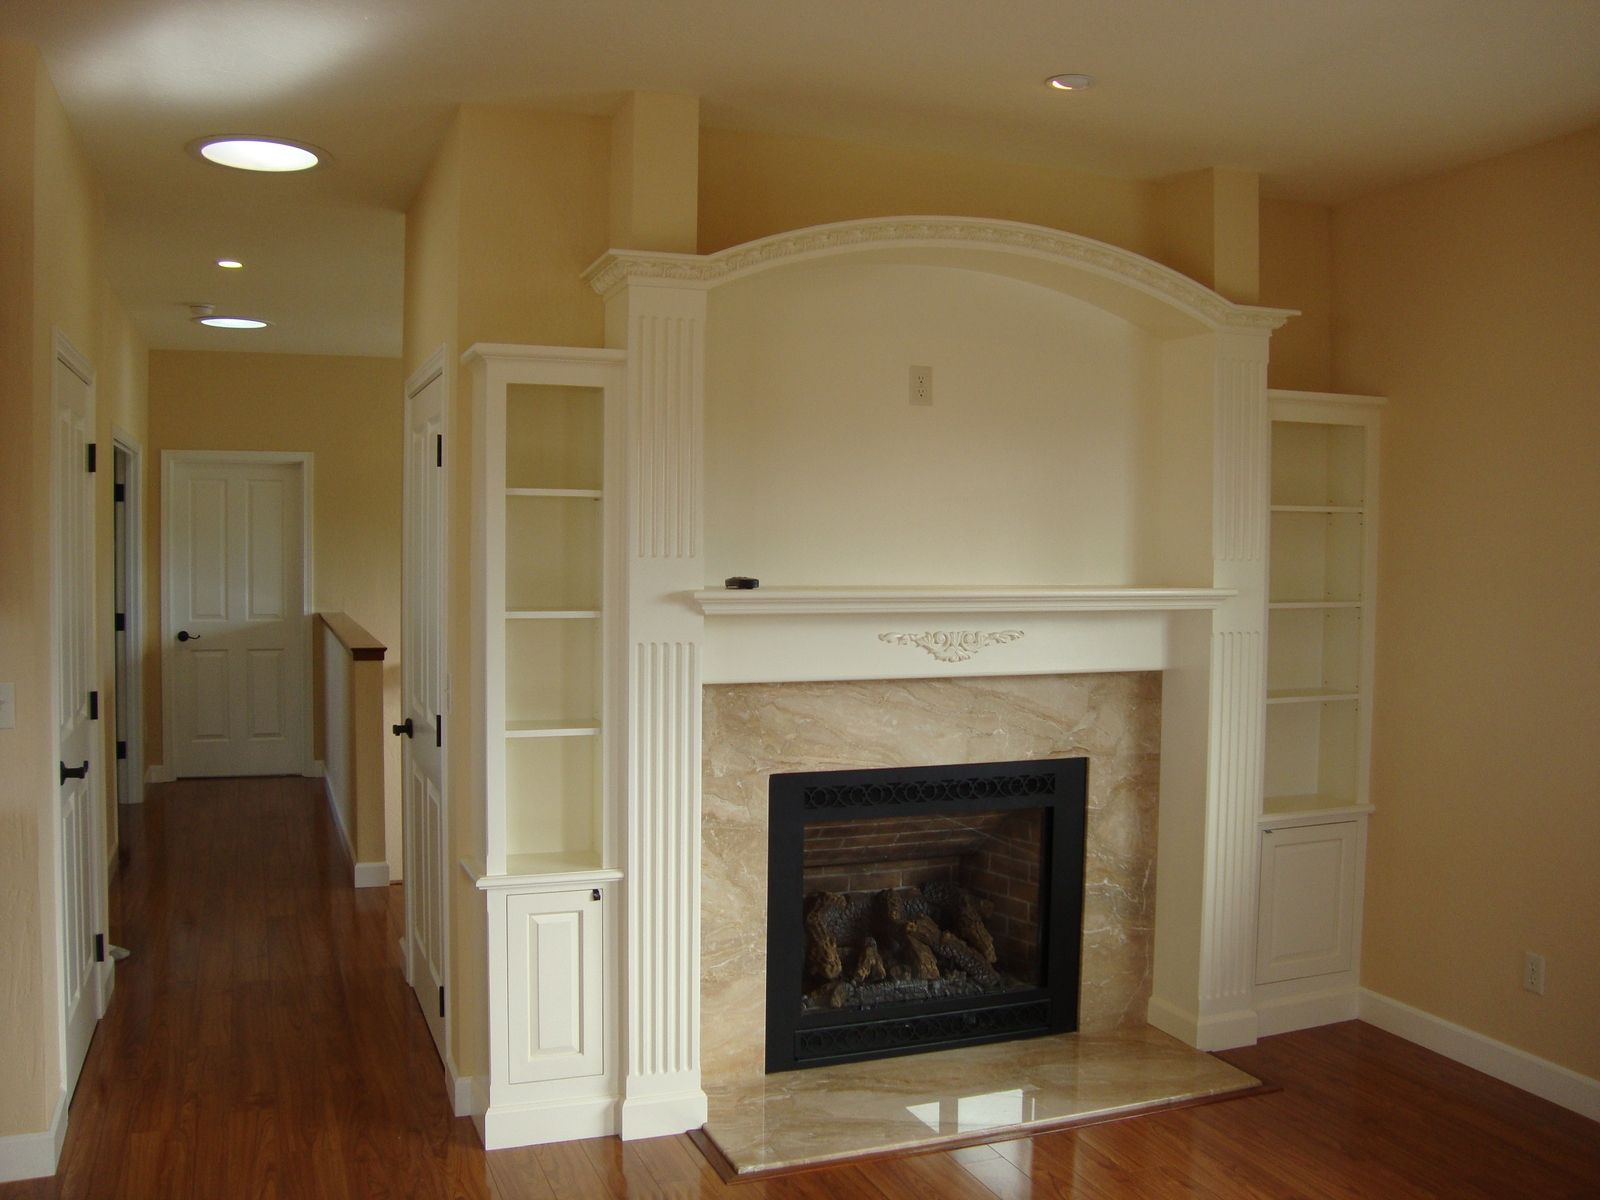 Hand Crafted Fireplace Surround By Top Notch Carpentry Inc